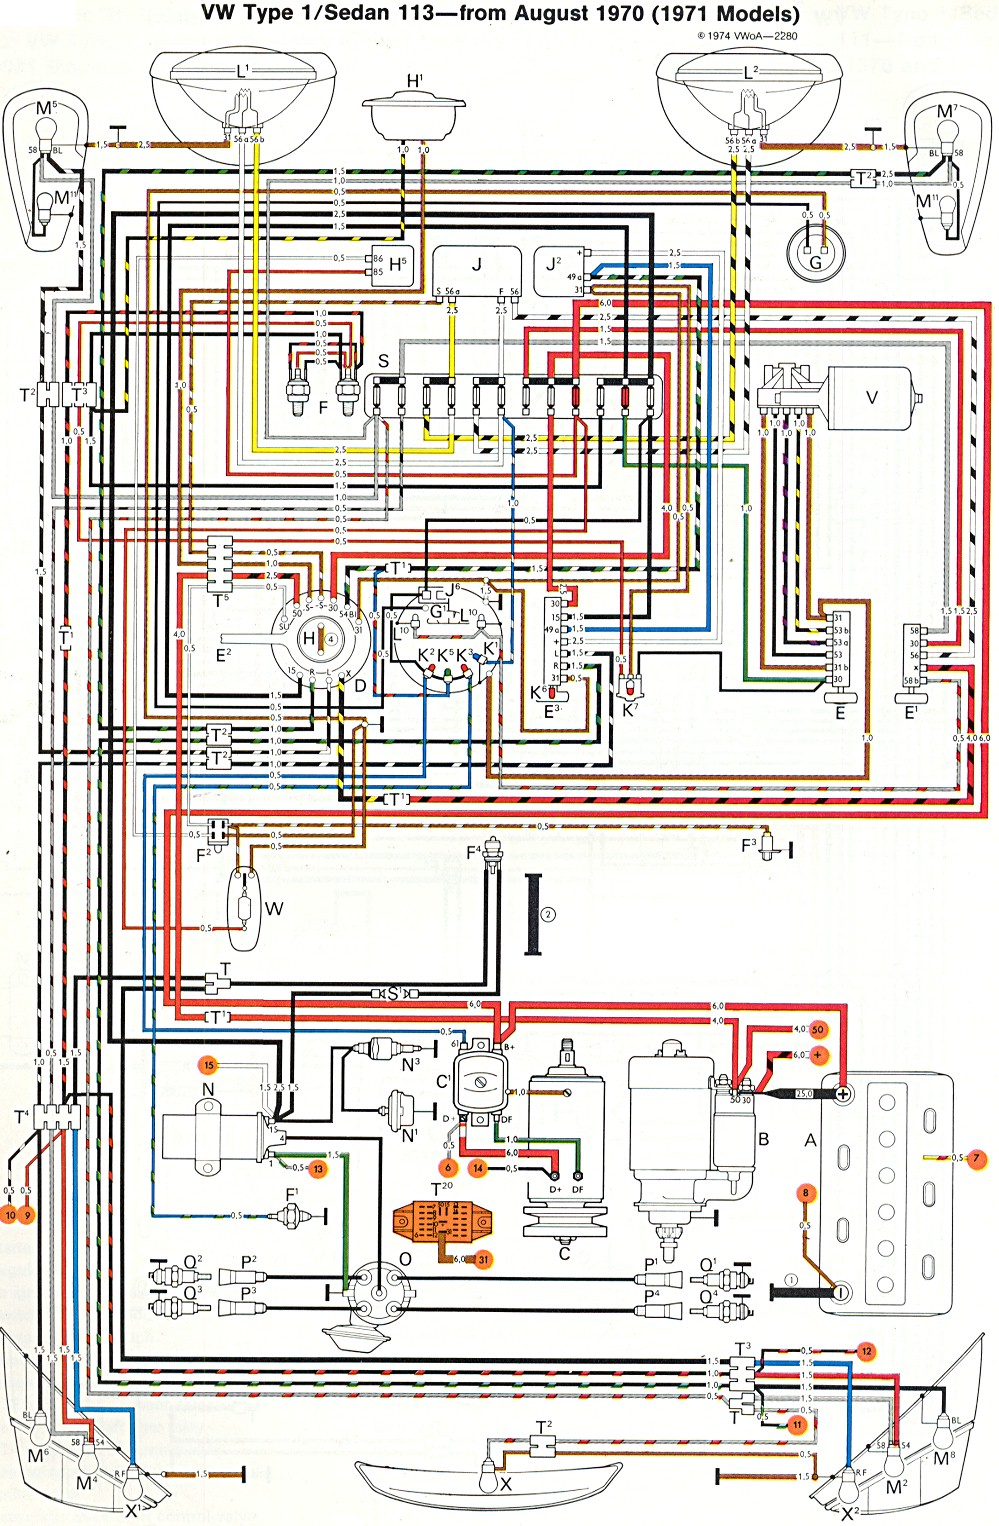 bug_super_71 1971 super beetle wiring diagram thegoldenbug com vw bug wiring at panicattacktreatment.co